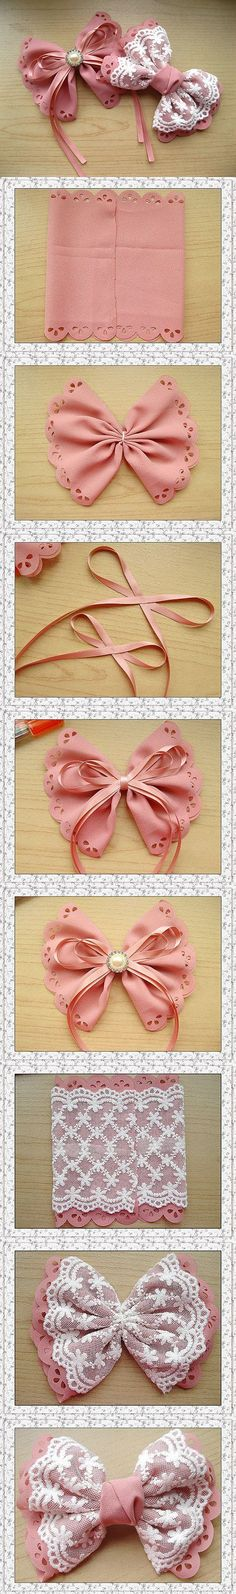 cute DIY bow tutorial - need to try this with SugarVeil